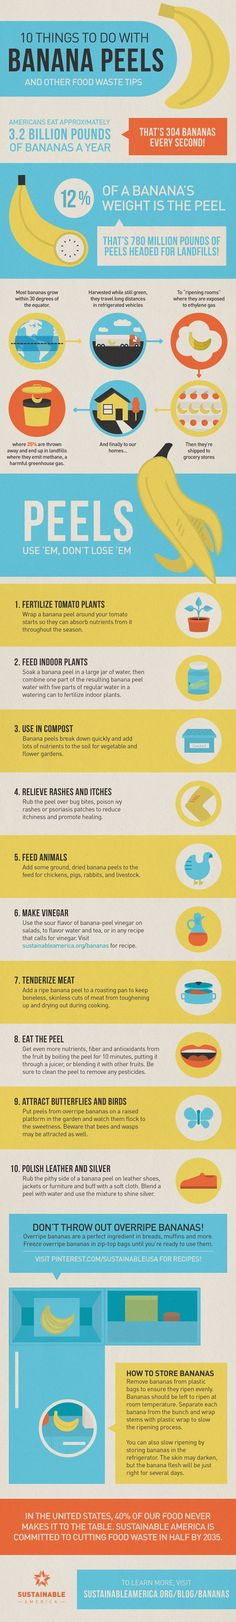 10 Ways to Use Banana Peels #INFOGRAPHIC